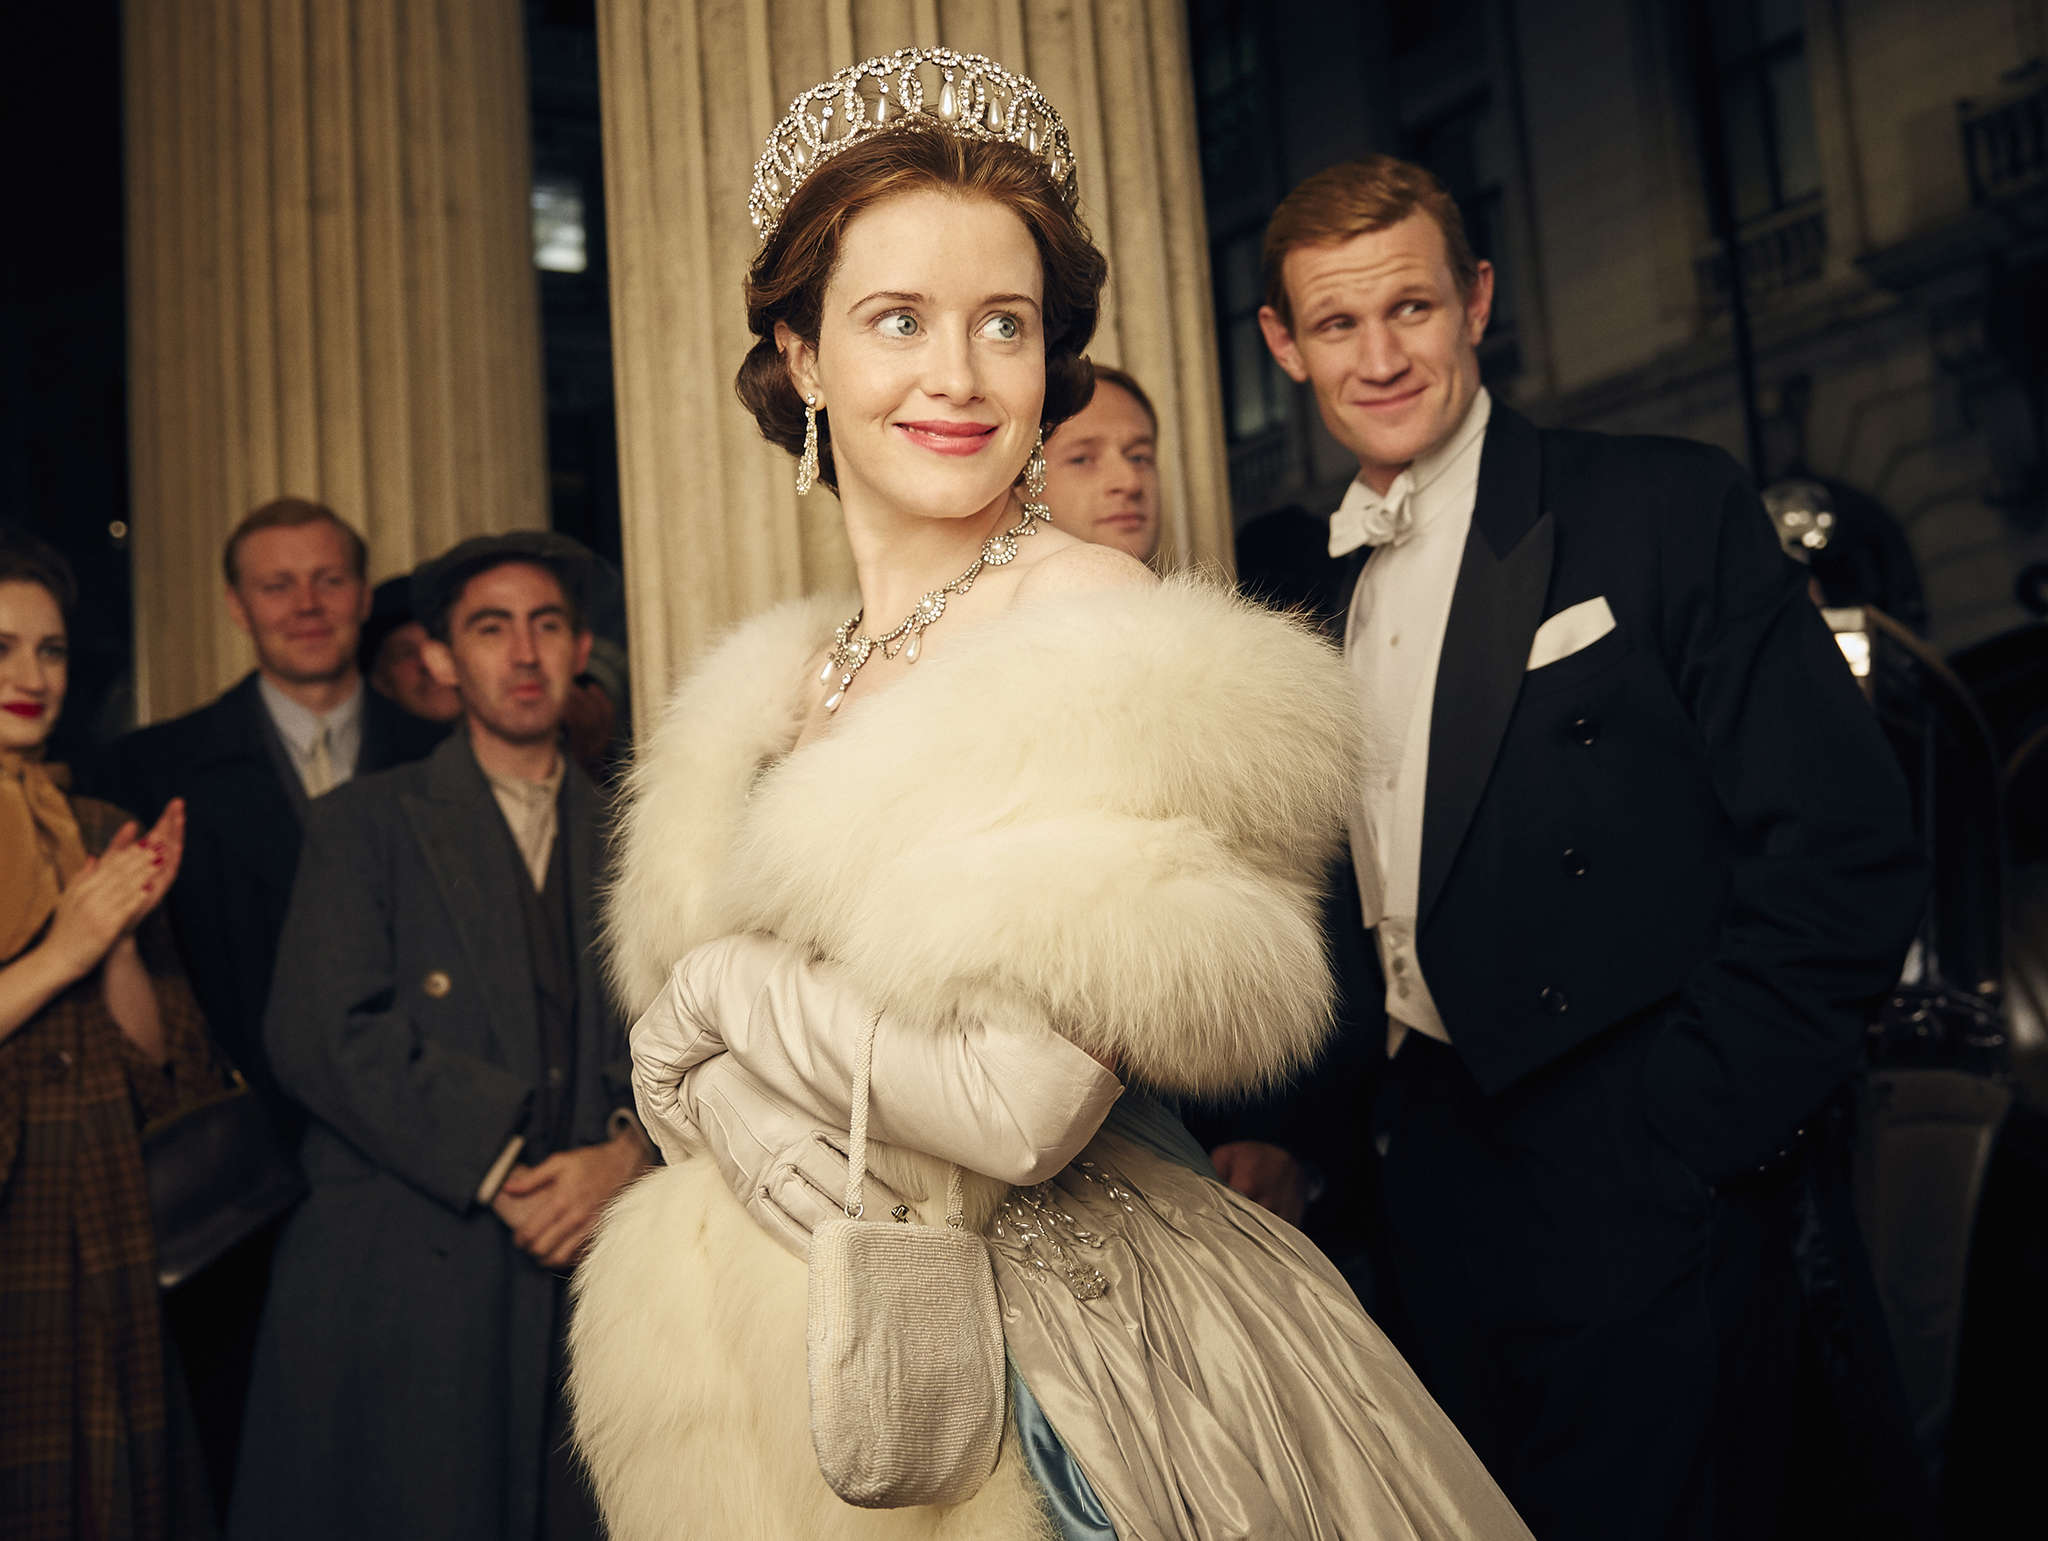 """The Crown"" stars Claire Foy as Queen Elizabeth II and Matt Smith as Prince Philip."